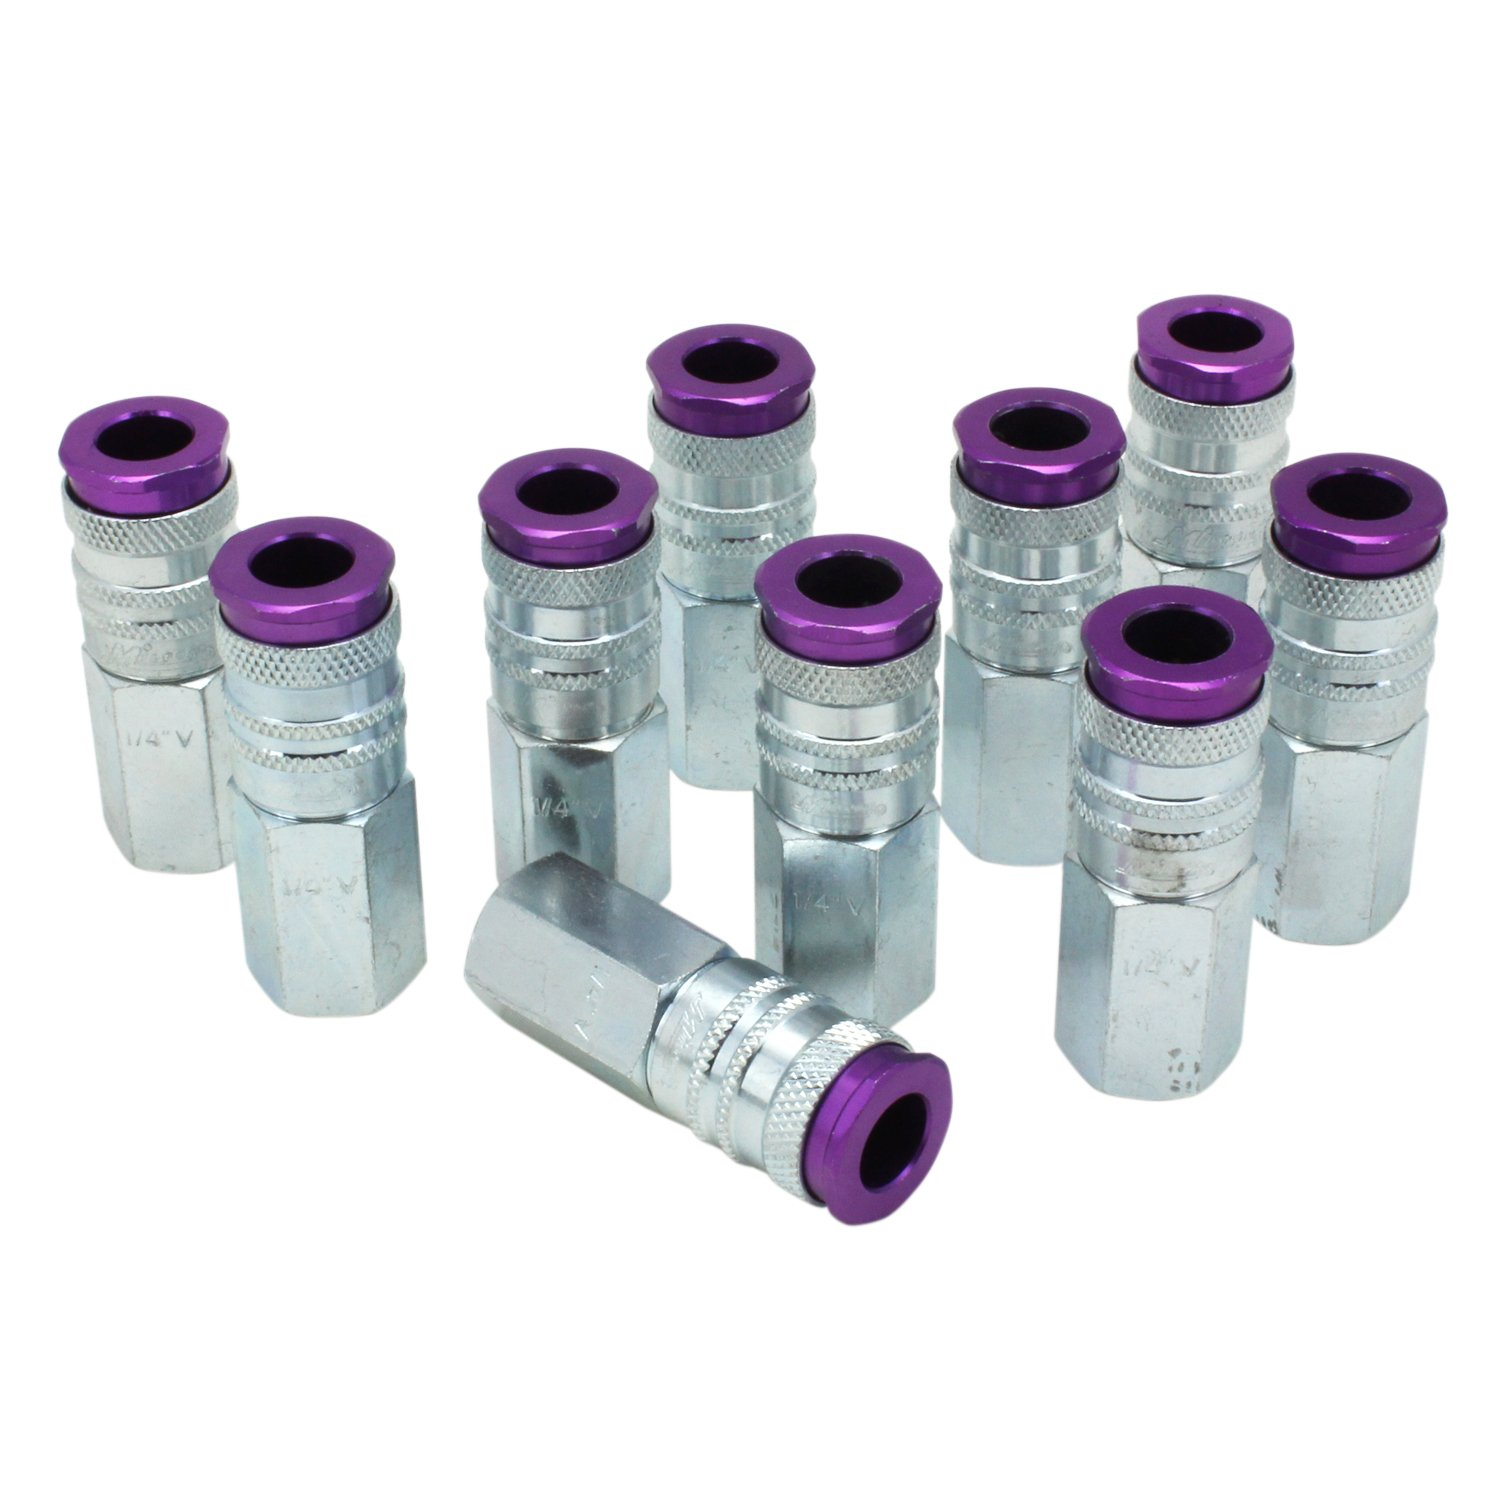 ColorFit by Milton HIGHFLOWPRO 764VC Pneumatic Coupler - (V-Style, Purple) - 1/4'' NPT Female, (Box of 10)